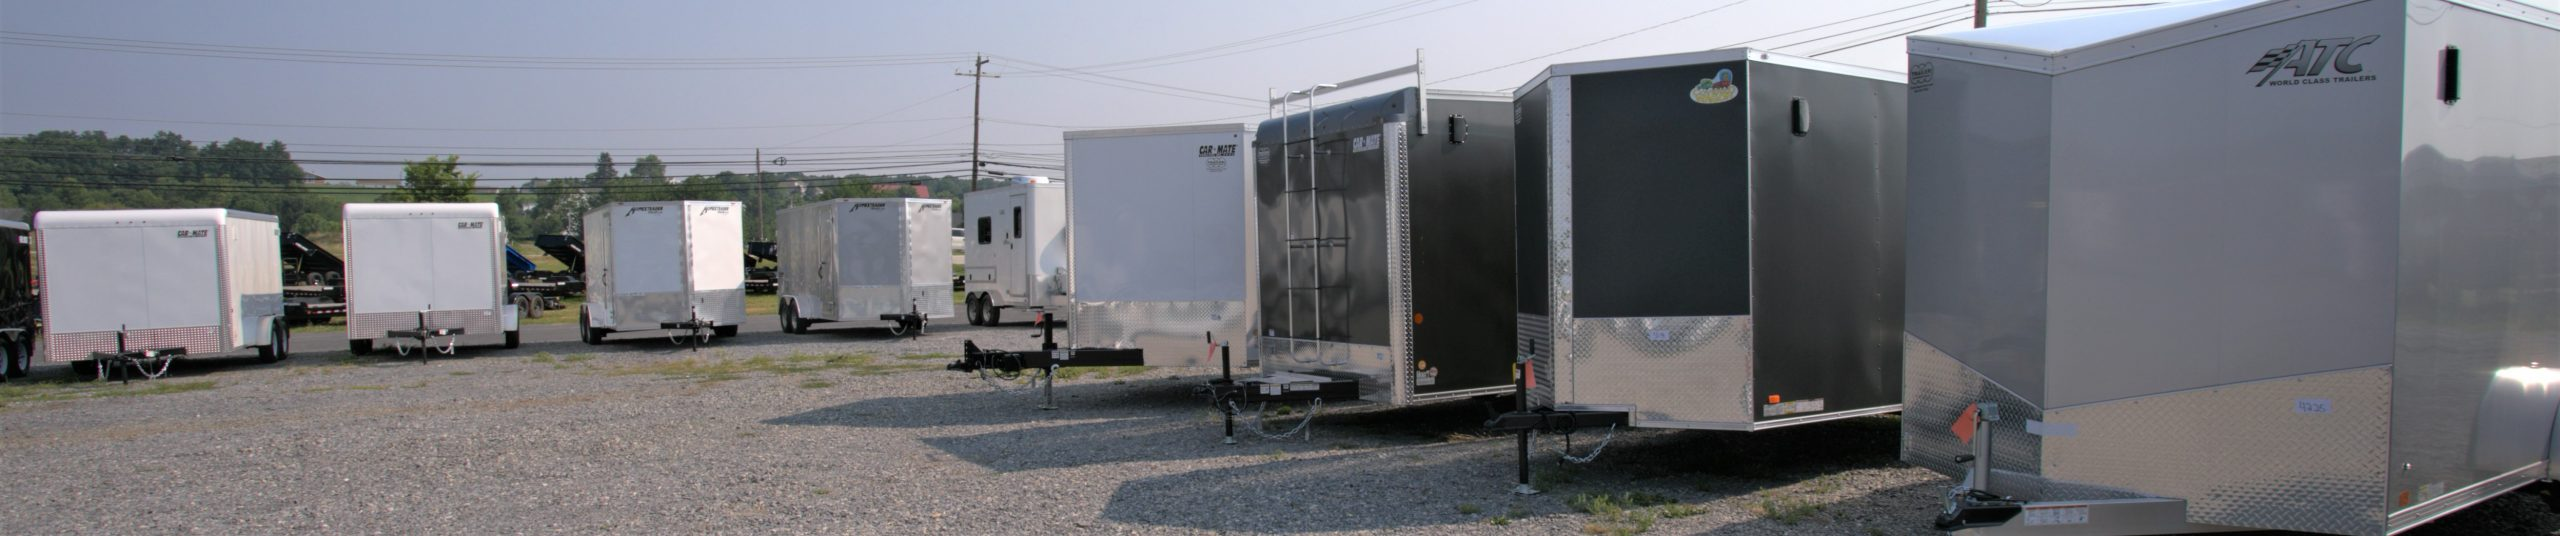 several enclosed cargo trailers parked